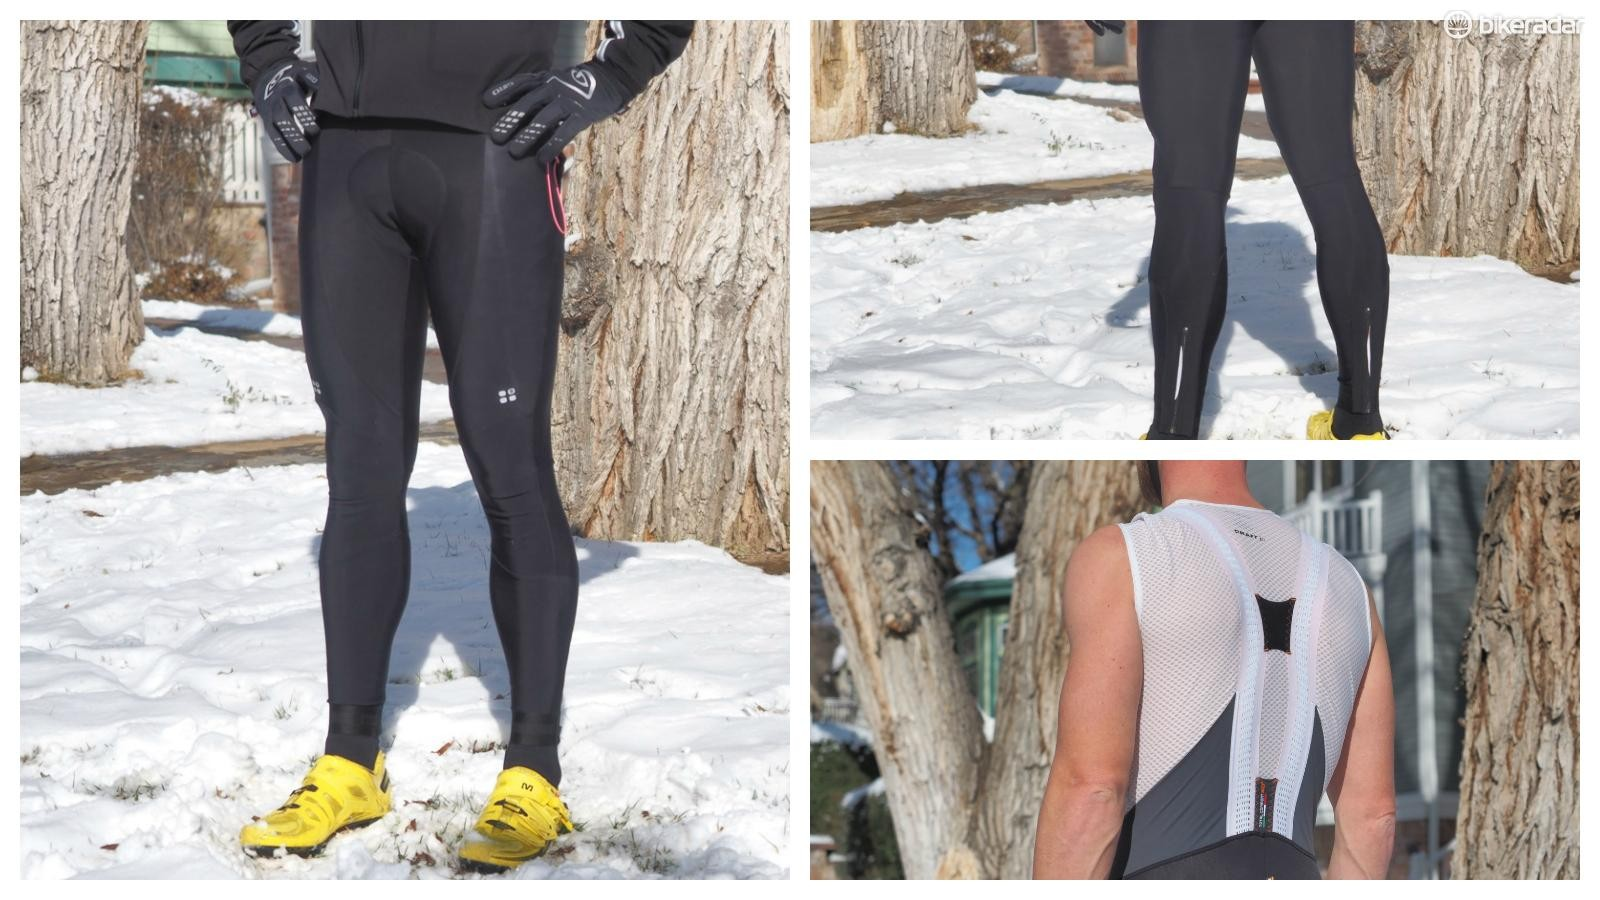 Flattening (or removing) the stitching behind the knee and toning down the chamois would make these top shelf